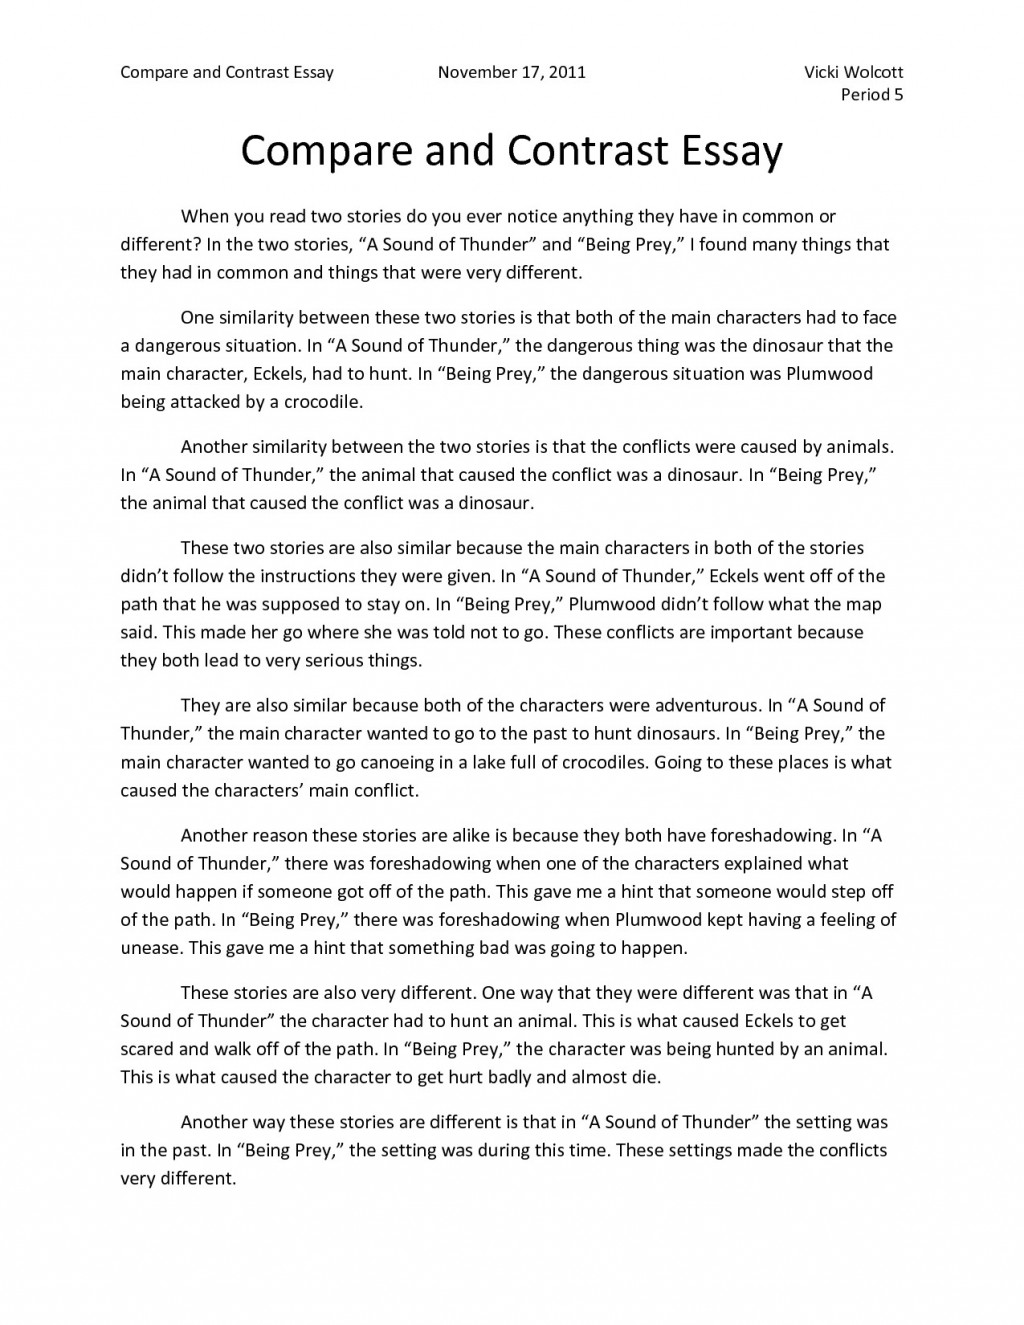 001 Example Of License Agreement Archives Tienda Biogota Co New Examples Comparison Essays Validte An Essay For Me Help Reflectiveting Ma Comparing Characters Analysis Characterization How To Astounding Write On A Paper Research Large